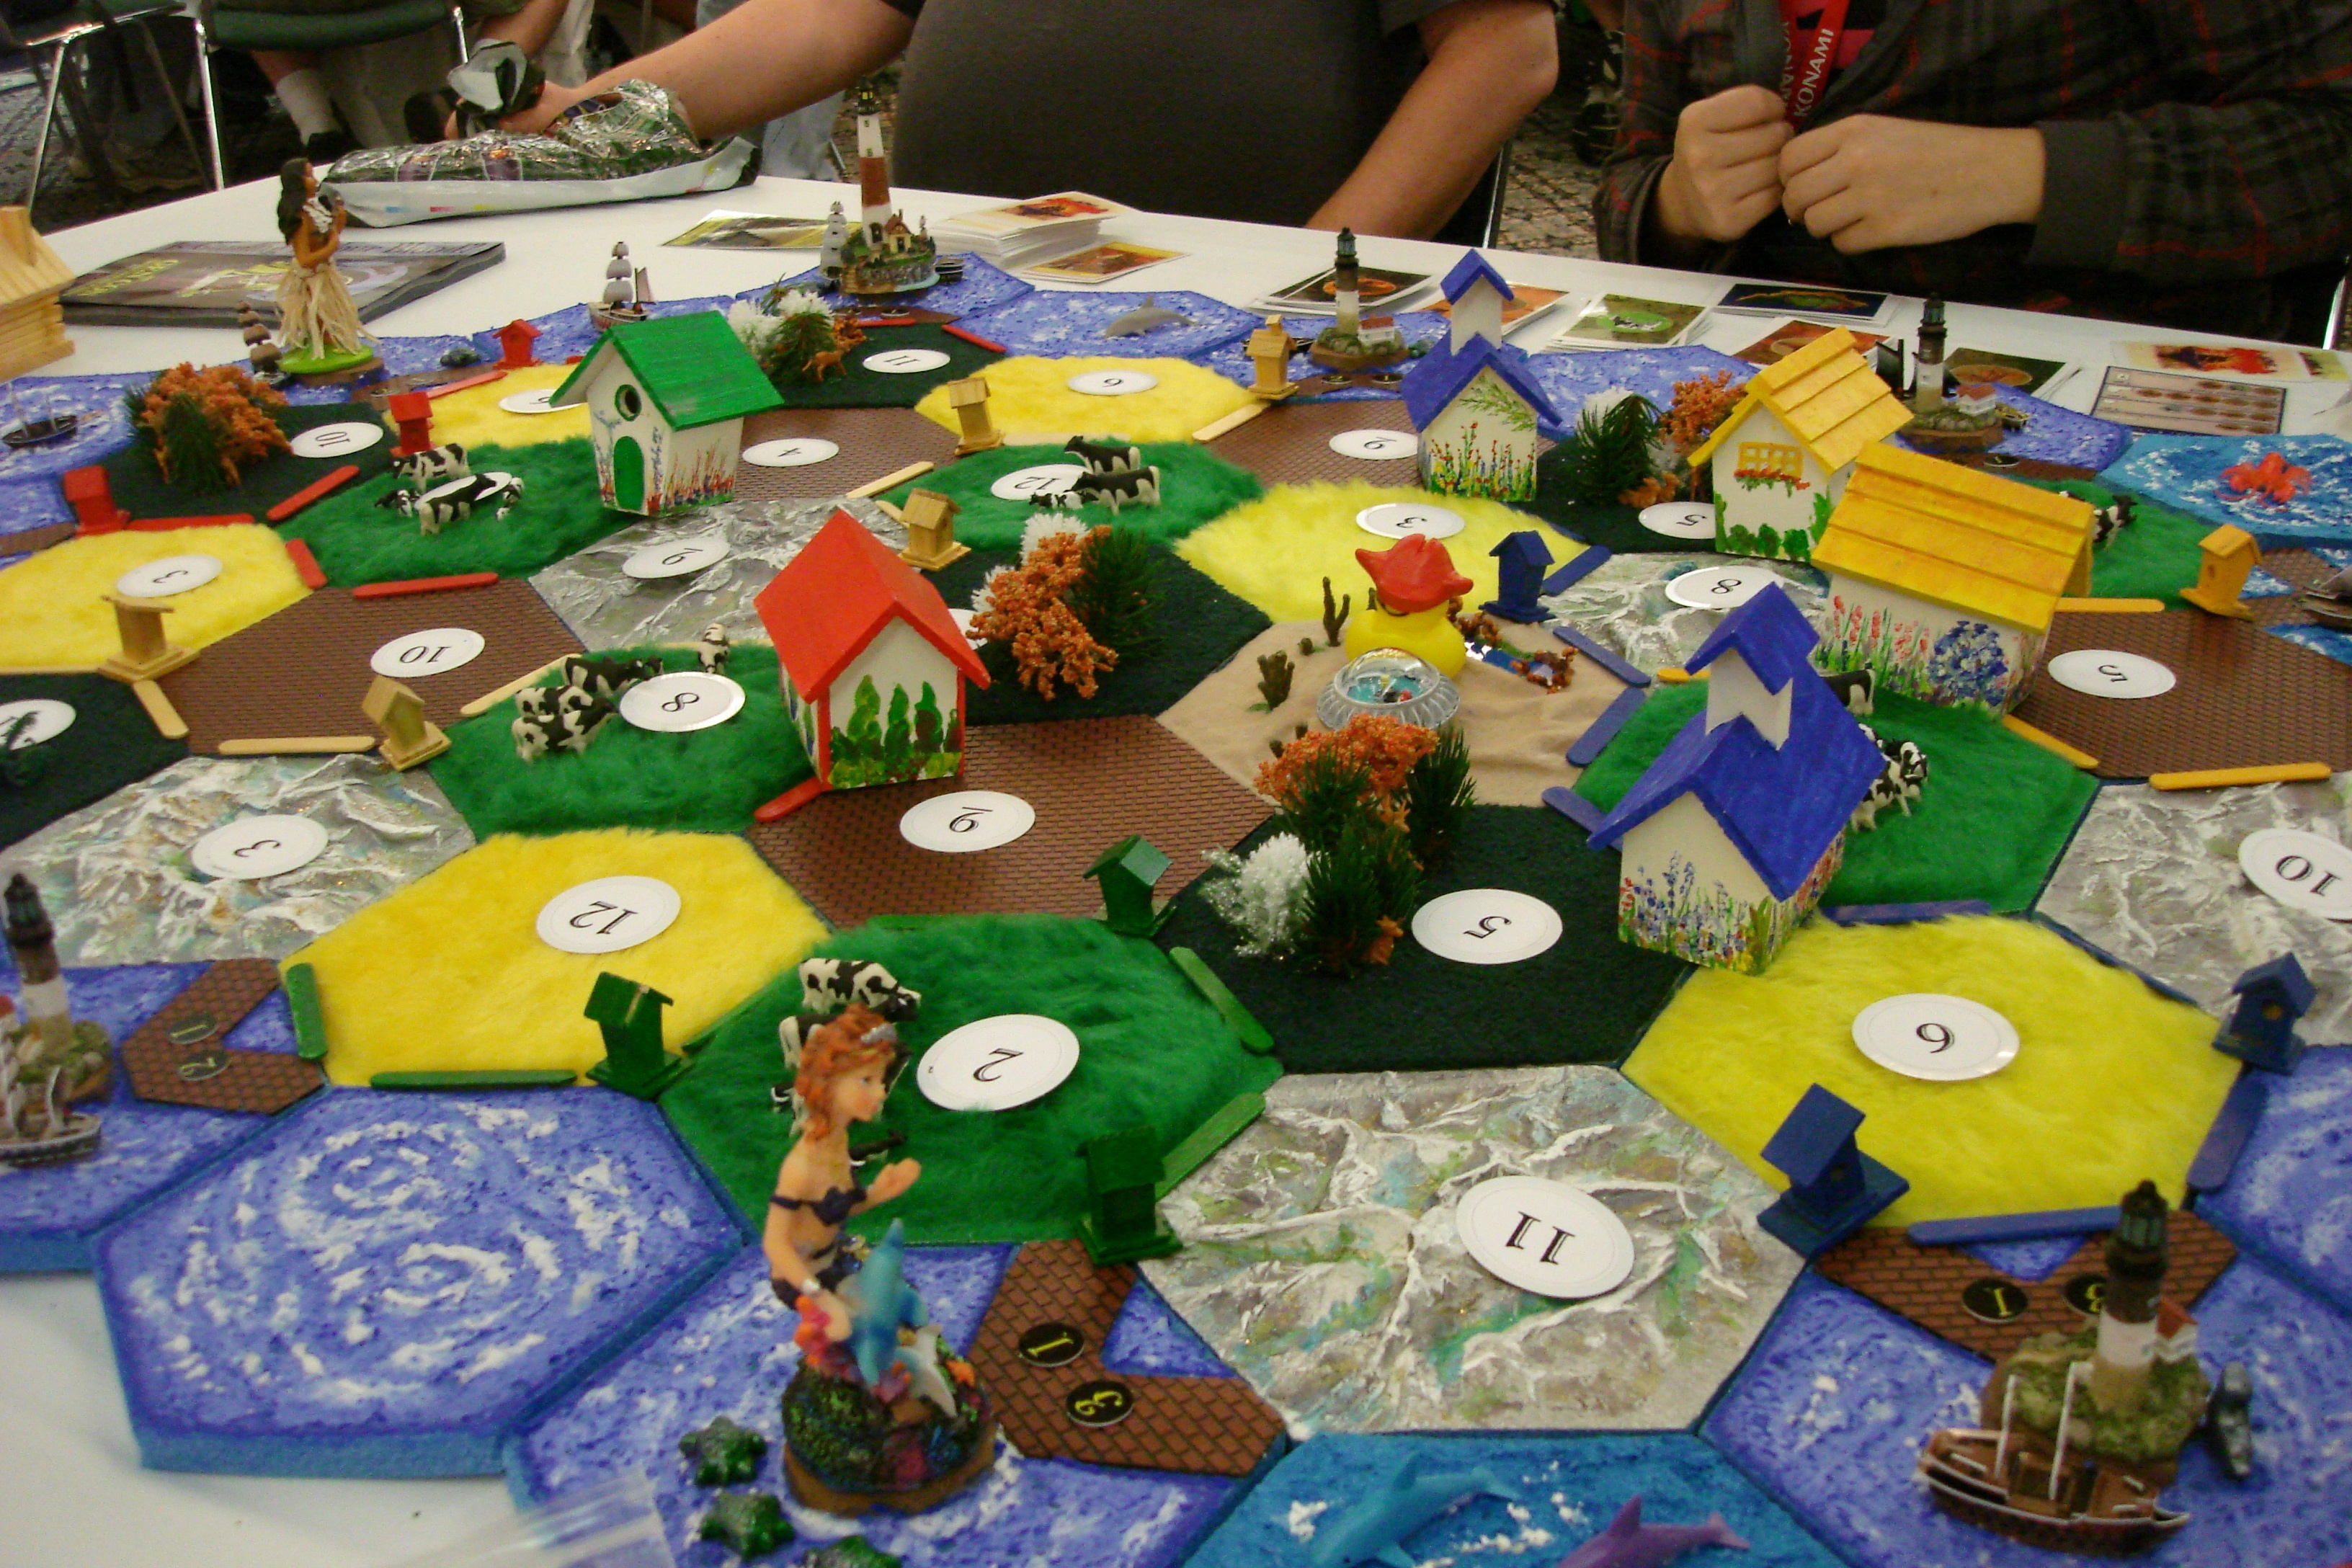 catan-board-games-review-images-2015